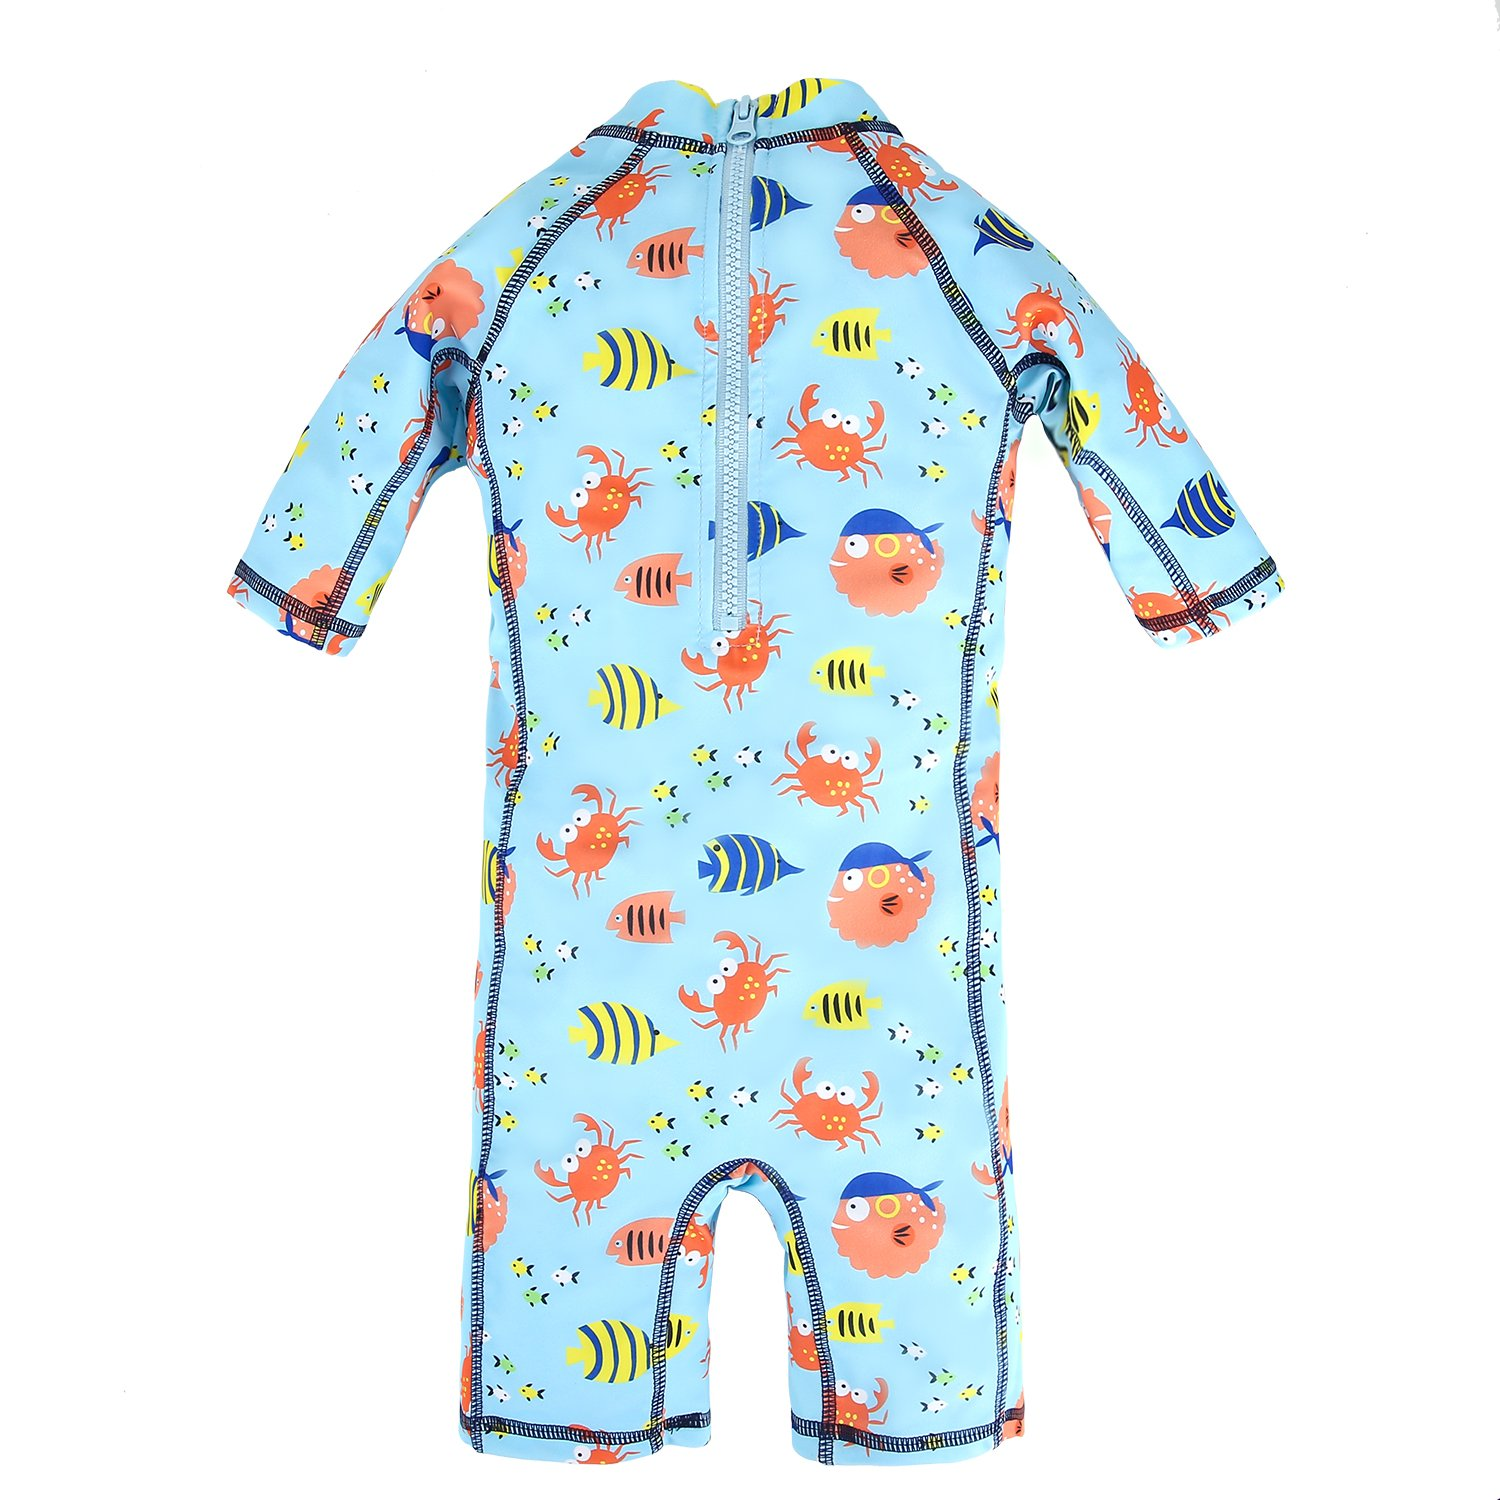 BIG ELEPHANT Kids Boys2 Pieces Anti UV Sun Protection Onesie Beach Swimsuit Swimwear with Hat